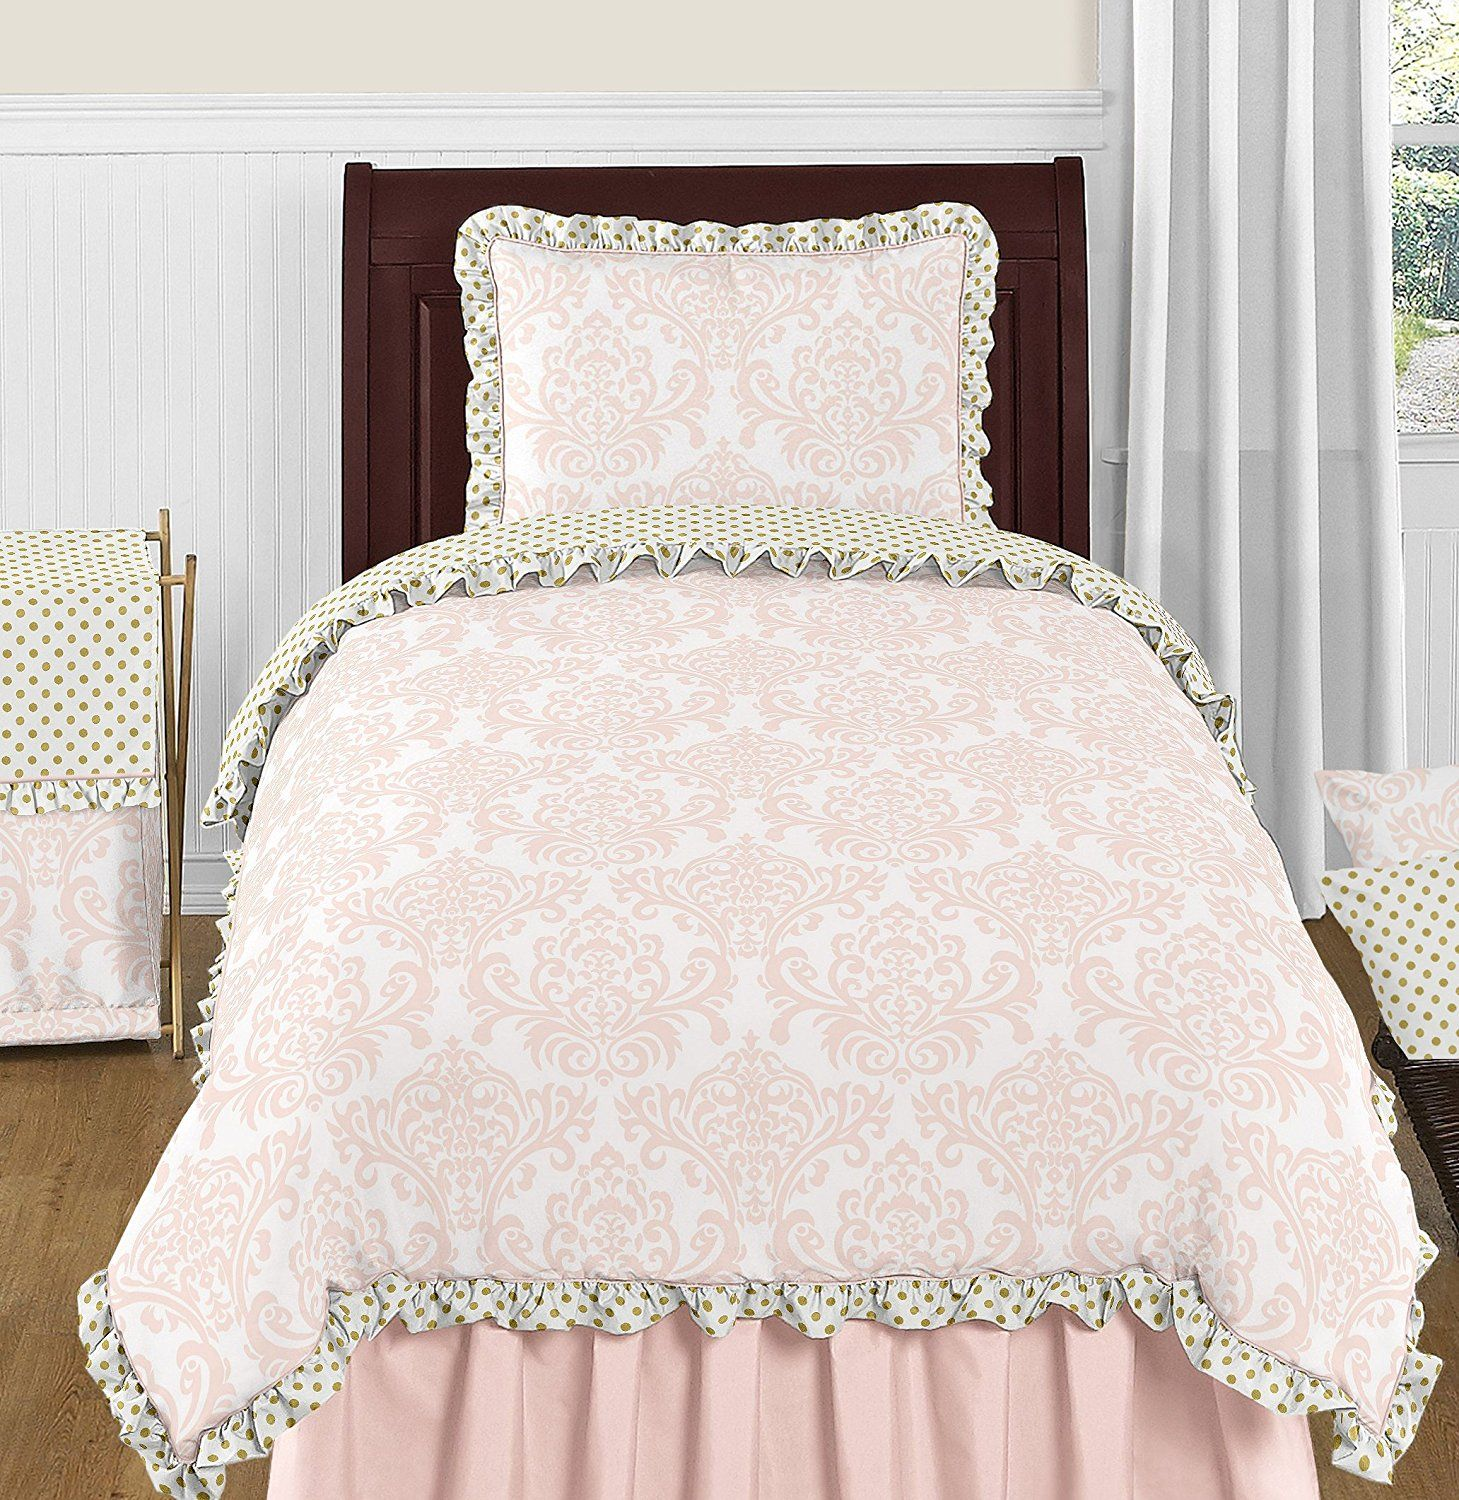 cover cotton for unicornlittle cheap boys duvet paisley mesmerizing comforter bedding cute sets girl bedlittle pink childrens full cliab little stores size kids pretty teen duvets image linen and set covers bedroom toddler girls awesome of pieces quilt mermaid beds twin